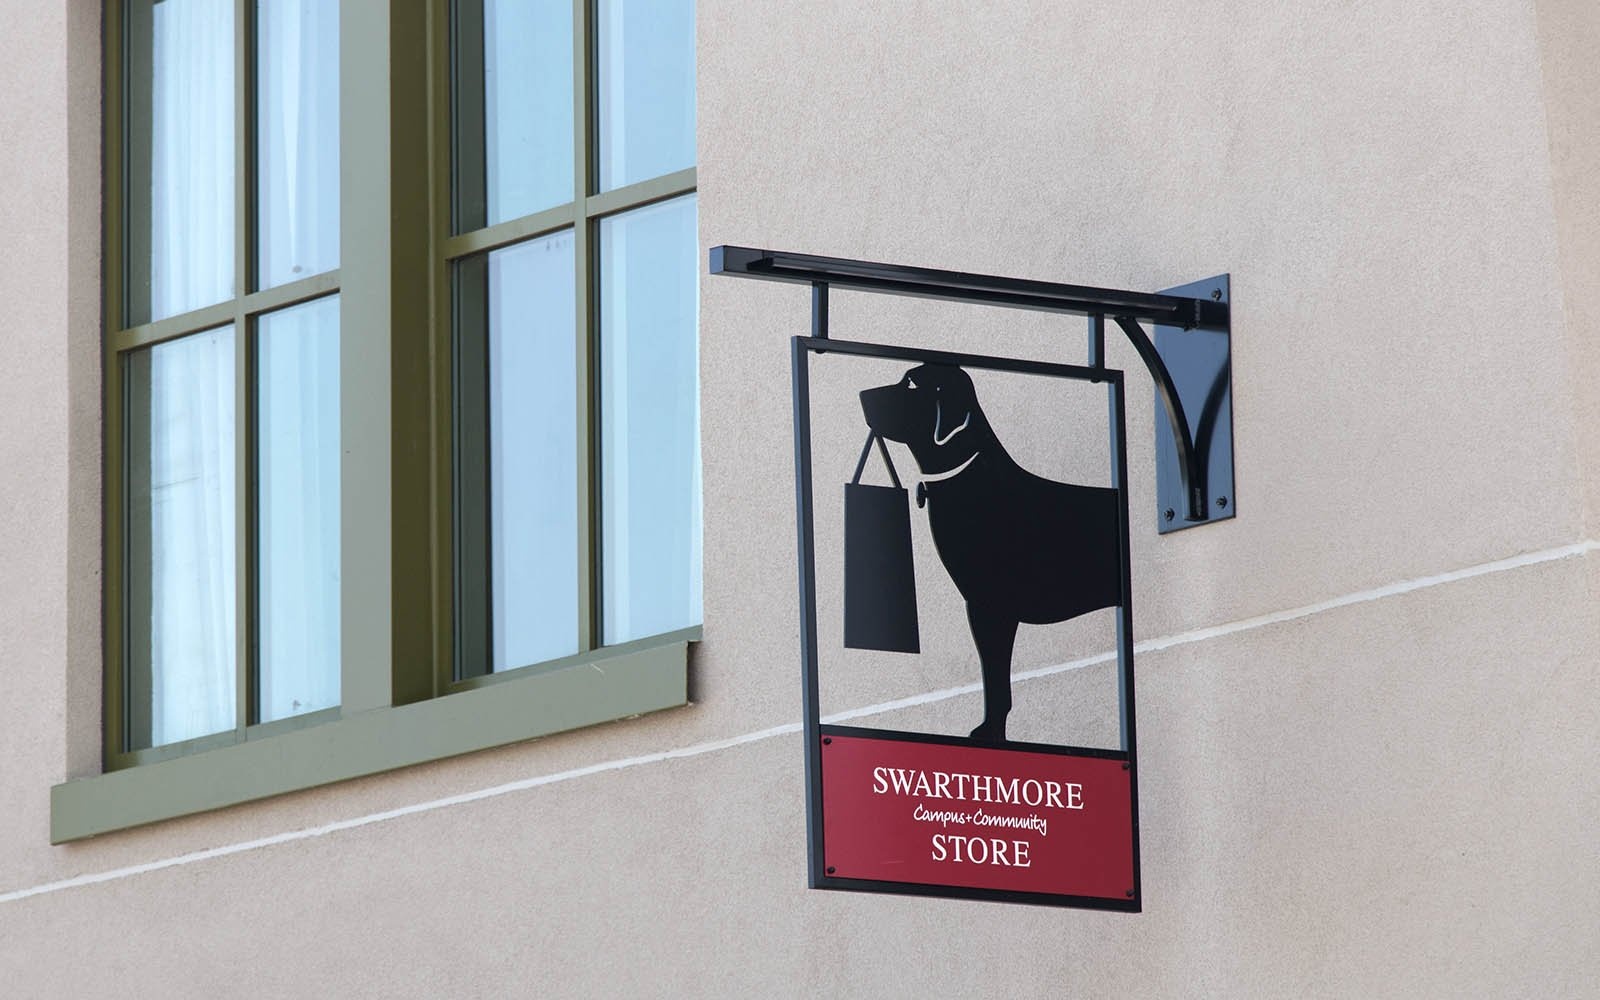 Bookstore sign of dog holding a bag in its mouth